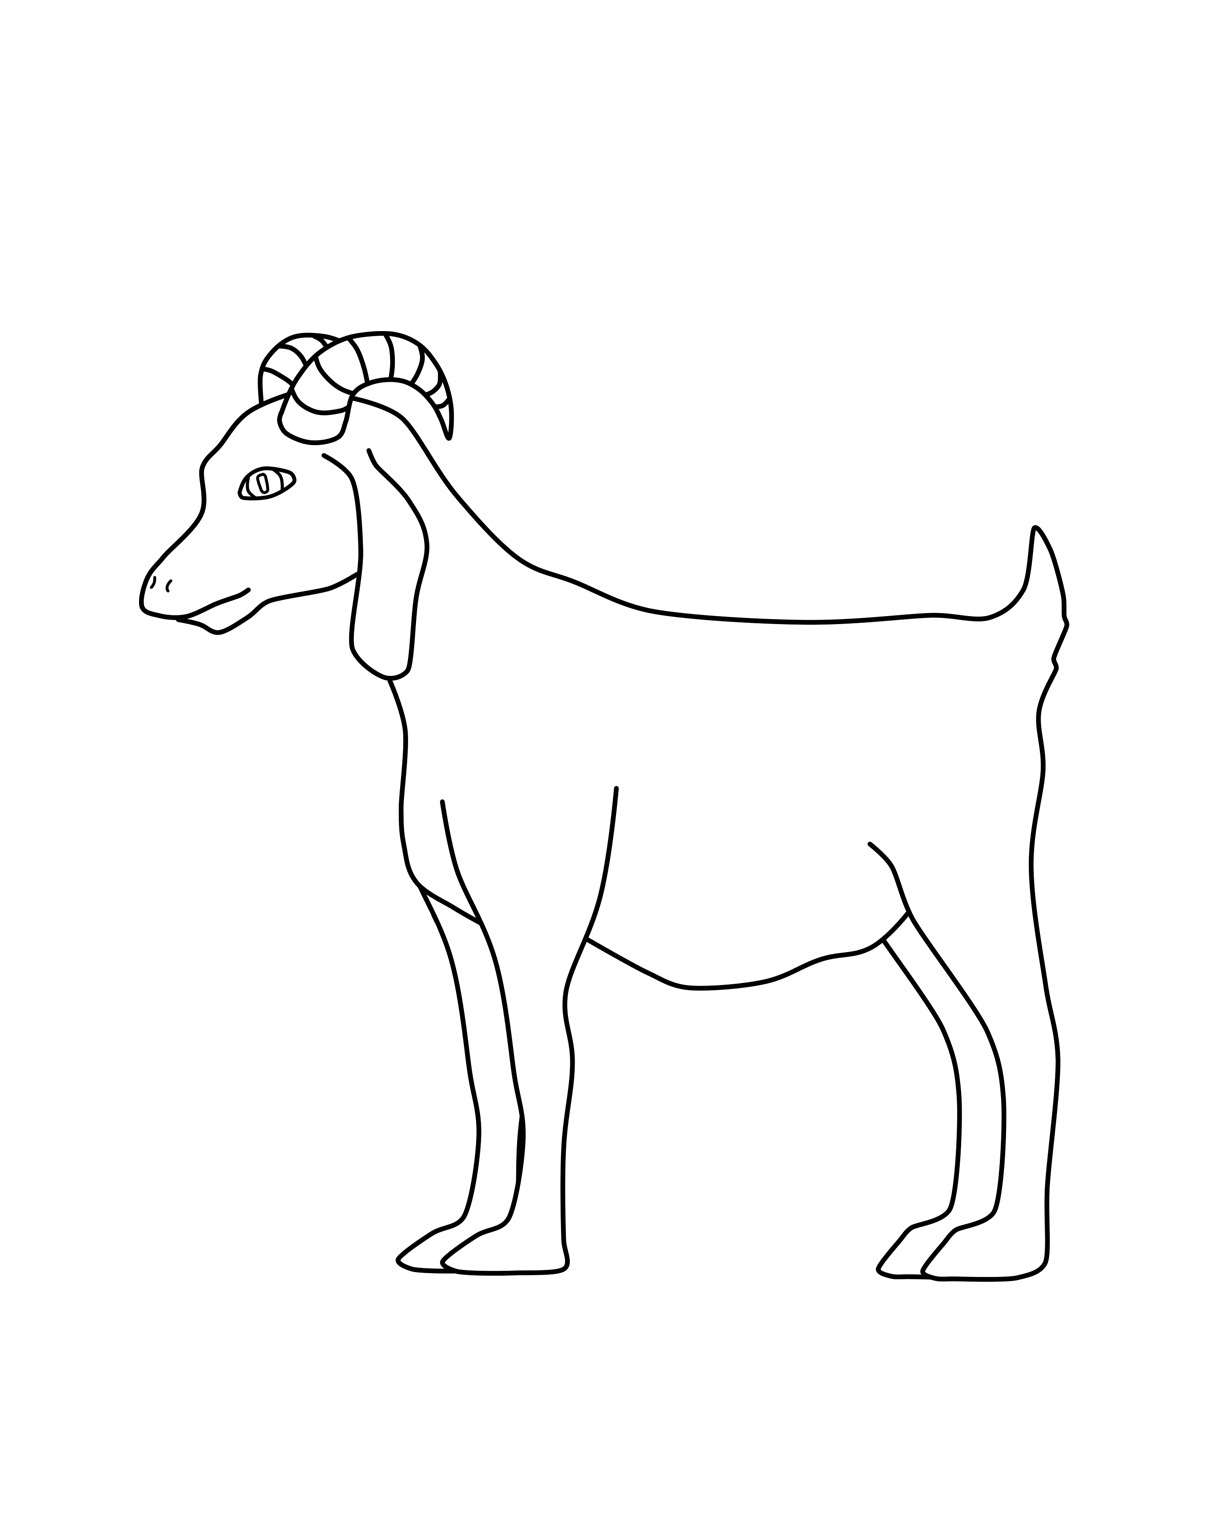 goat picture for colouring free printable goat coloring pages for kids colouring goat for picture